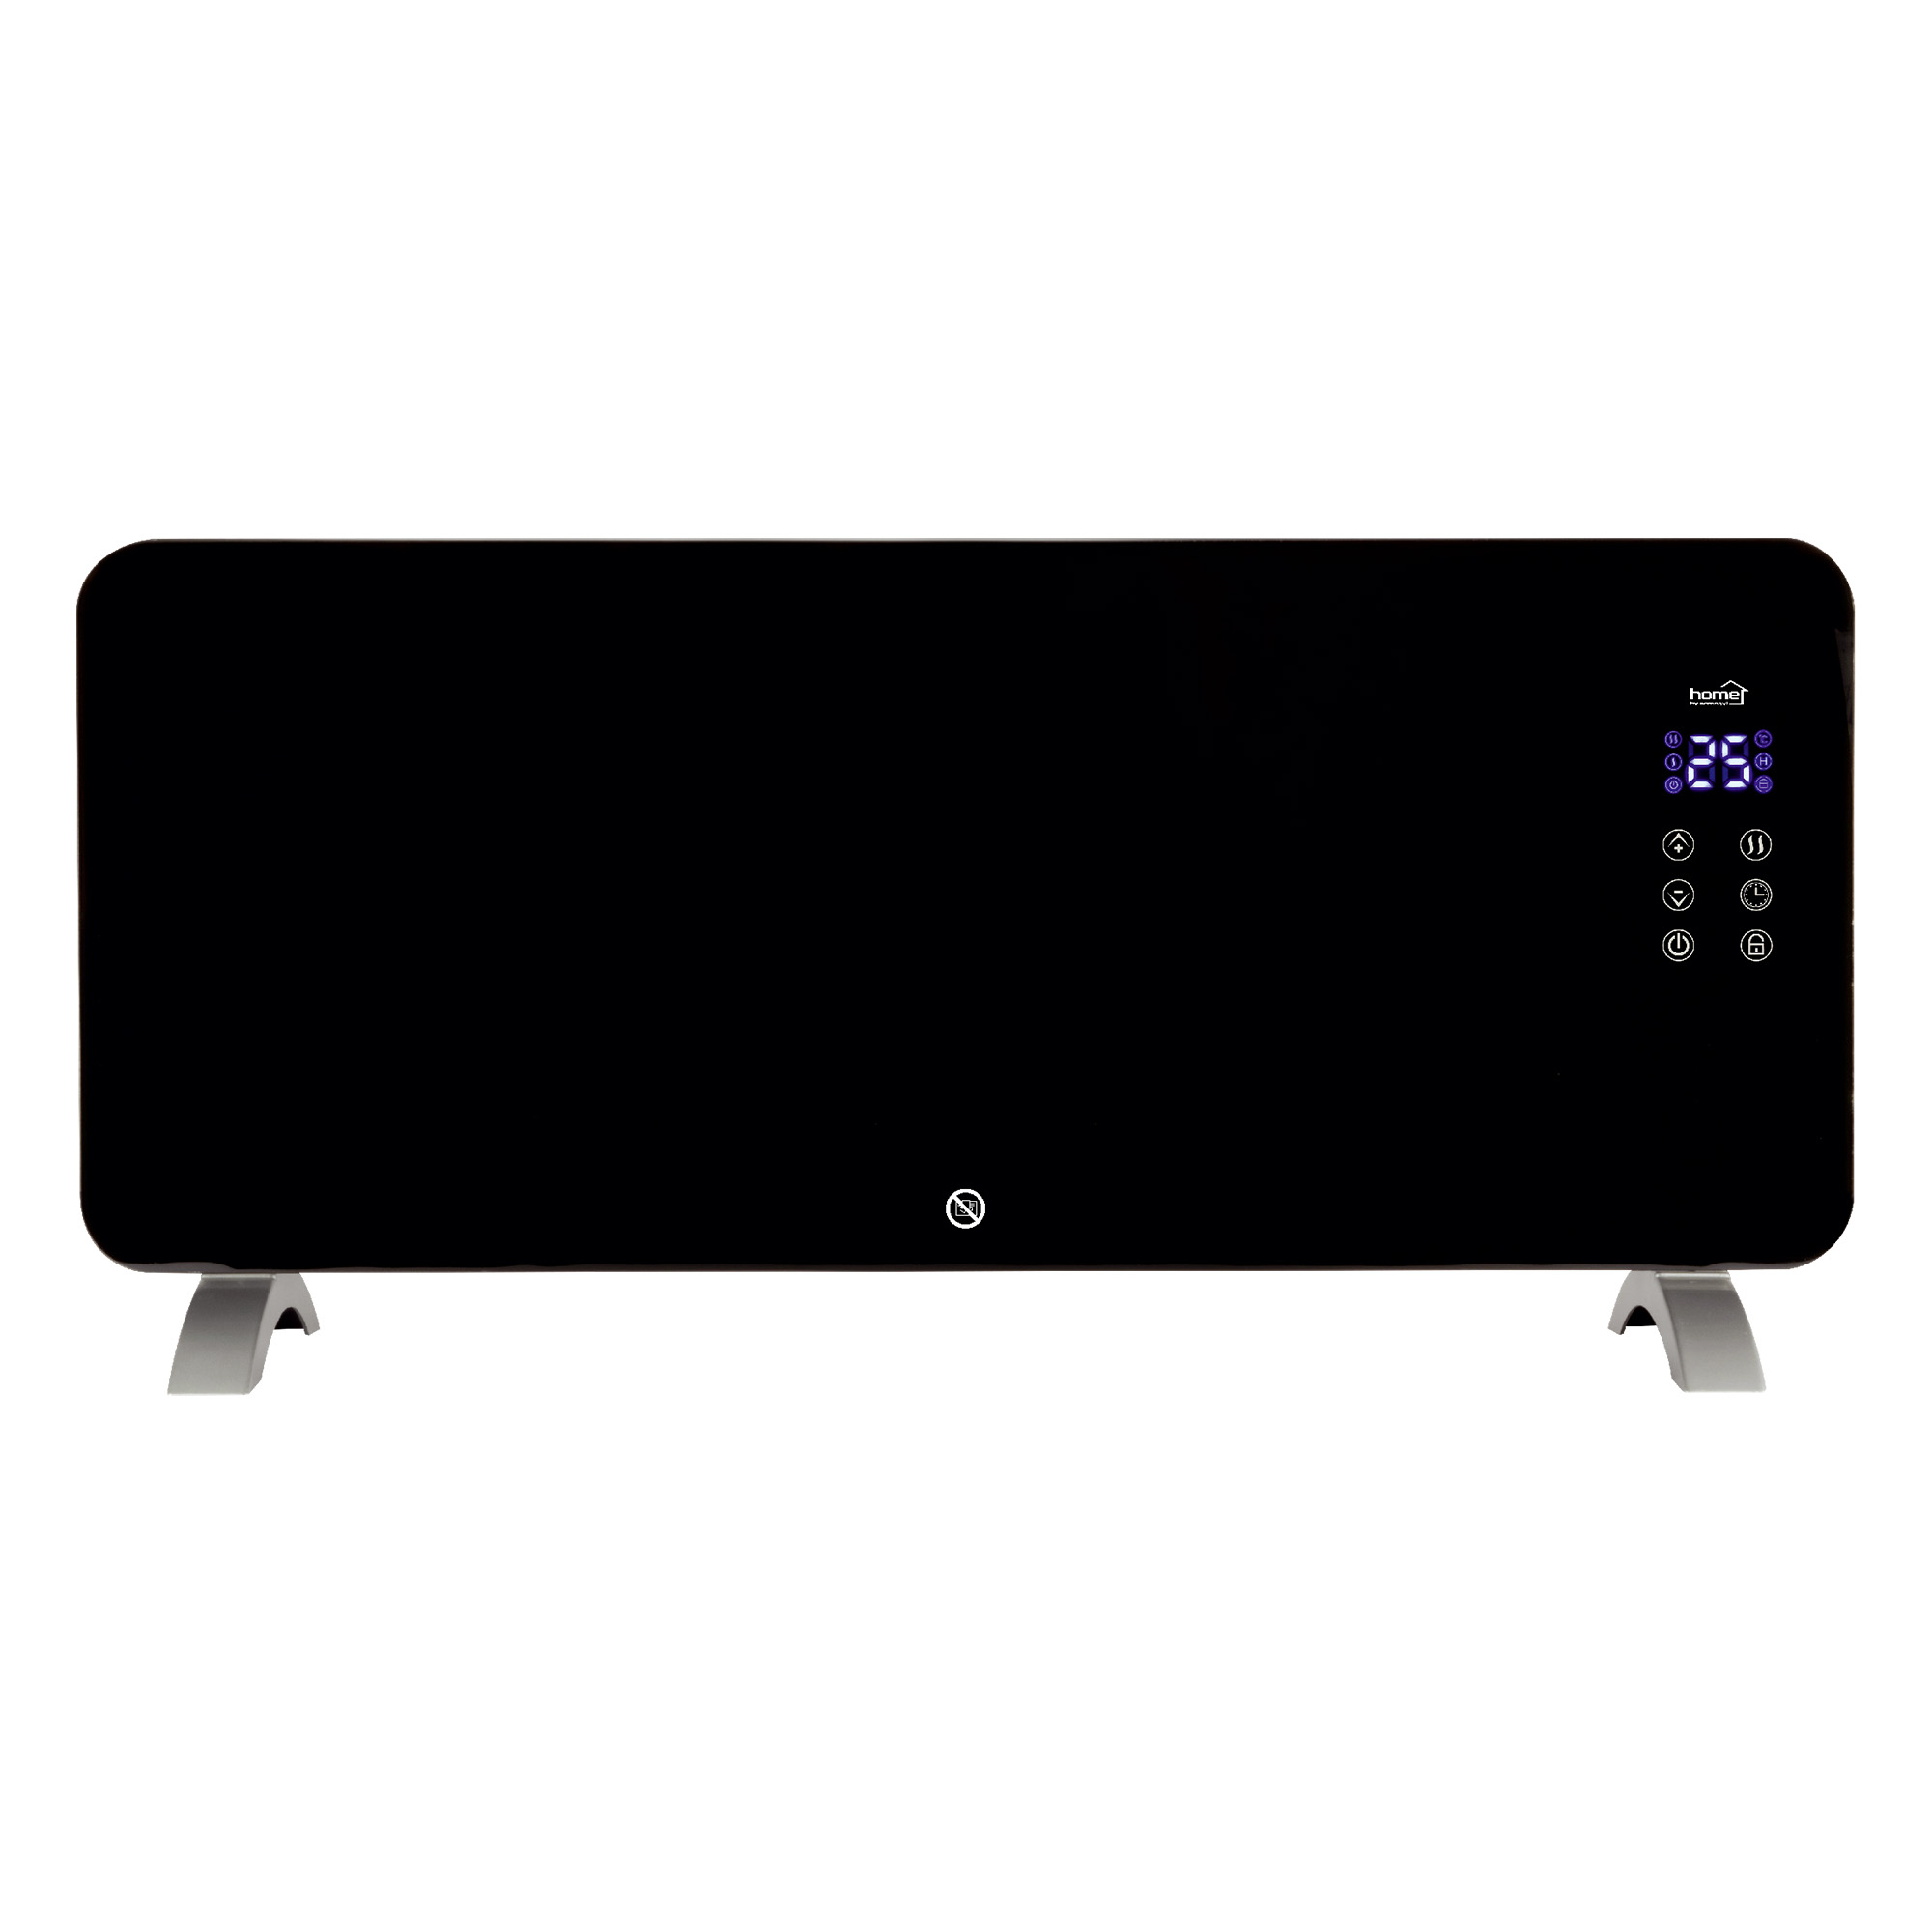 Convector electric smart Home by Somogyi  FK 430 , Wifi, 2000W, sticla,  92 x 43 x 24 cm